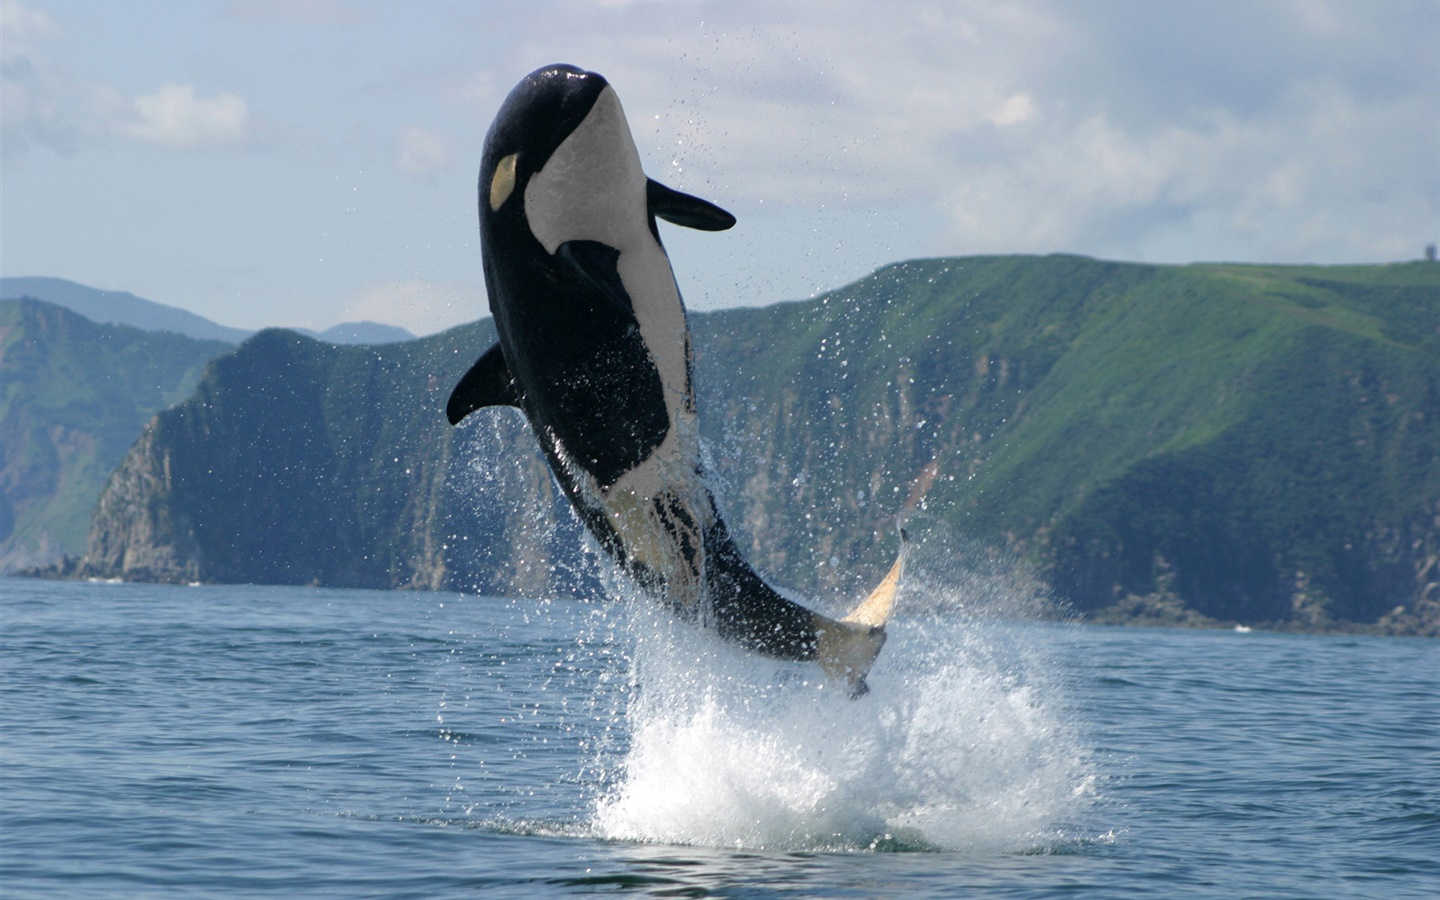 Orca jumping, sea, water splash 1440x900 wallpaper